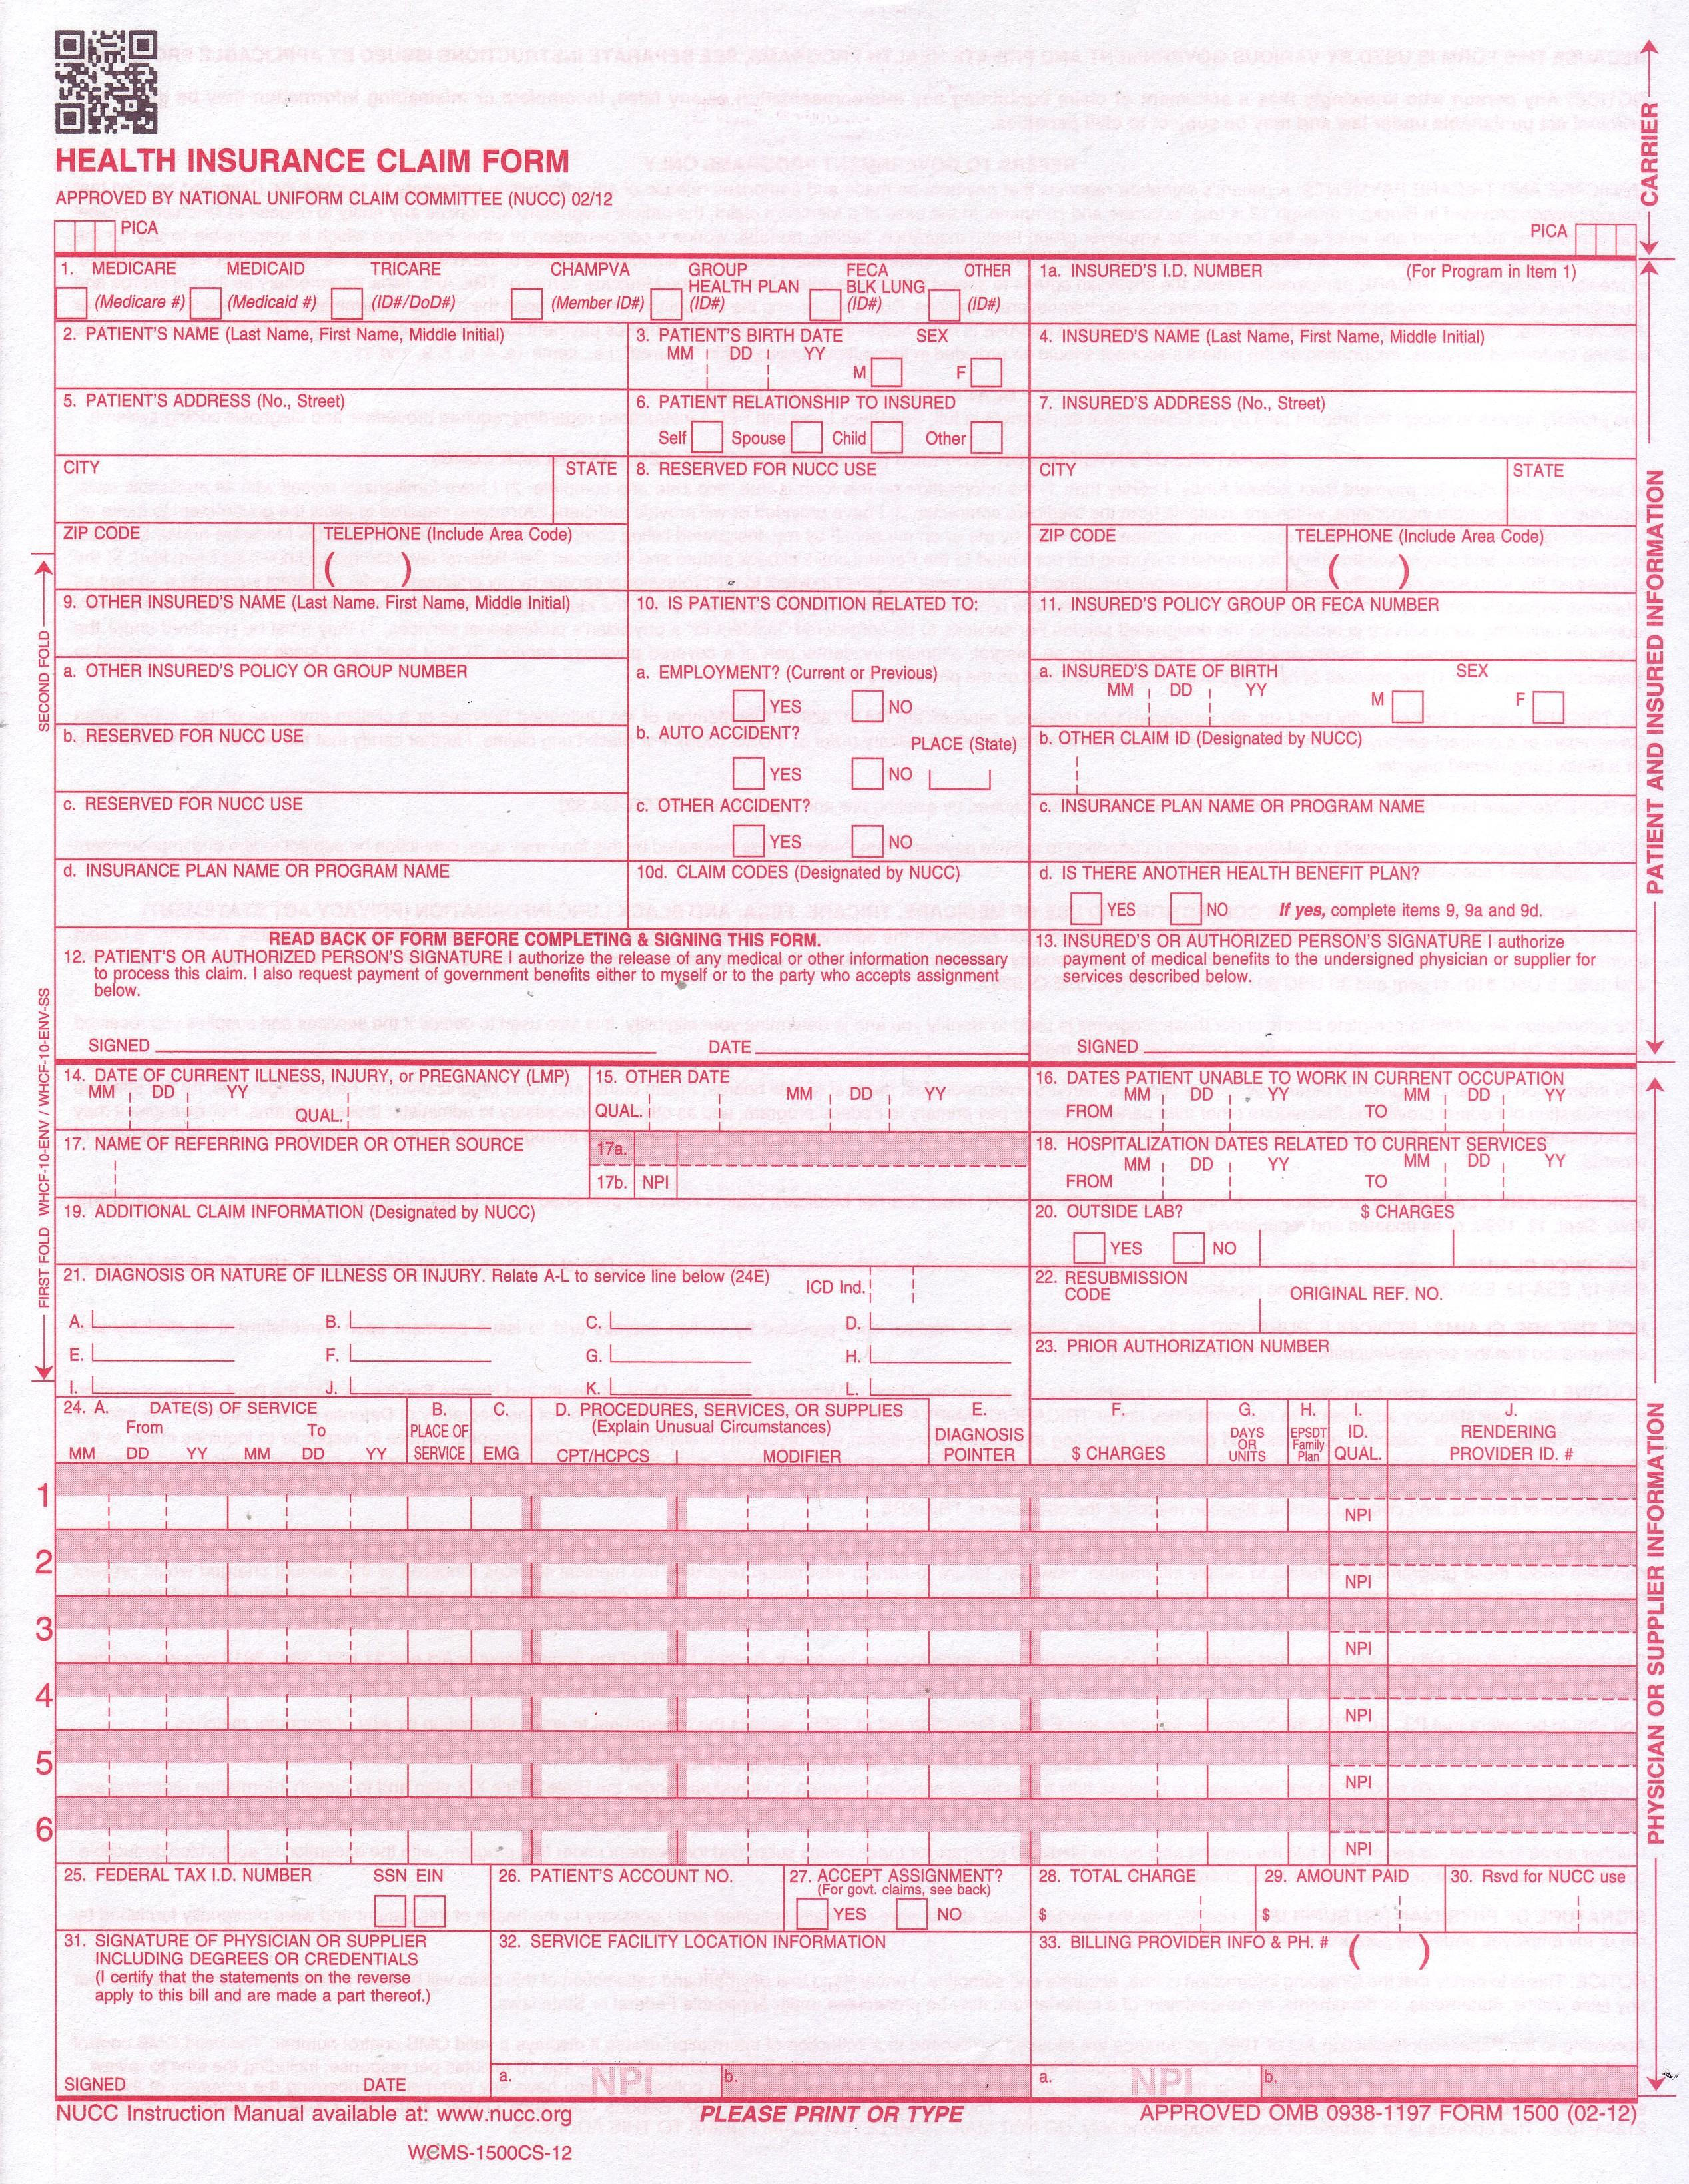 Fillable Cms 1500 Forms